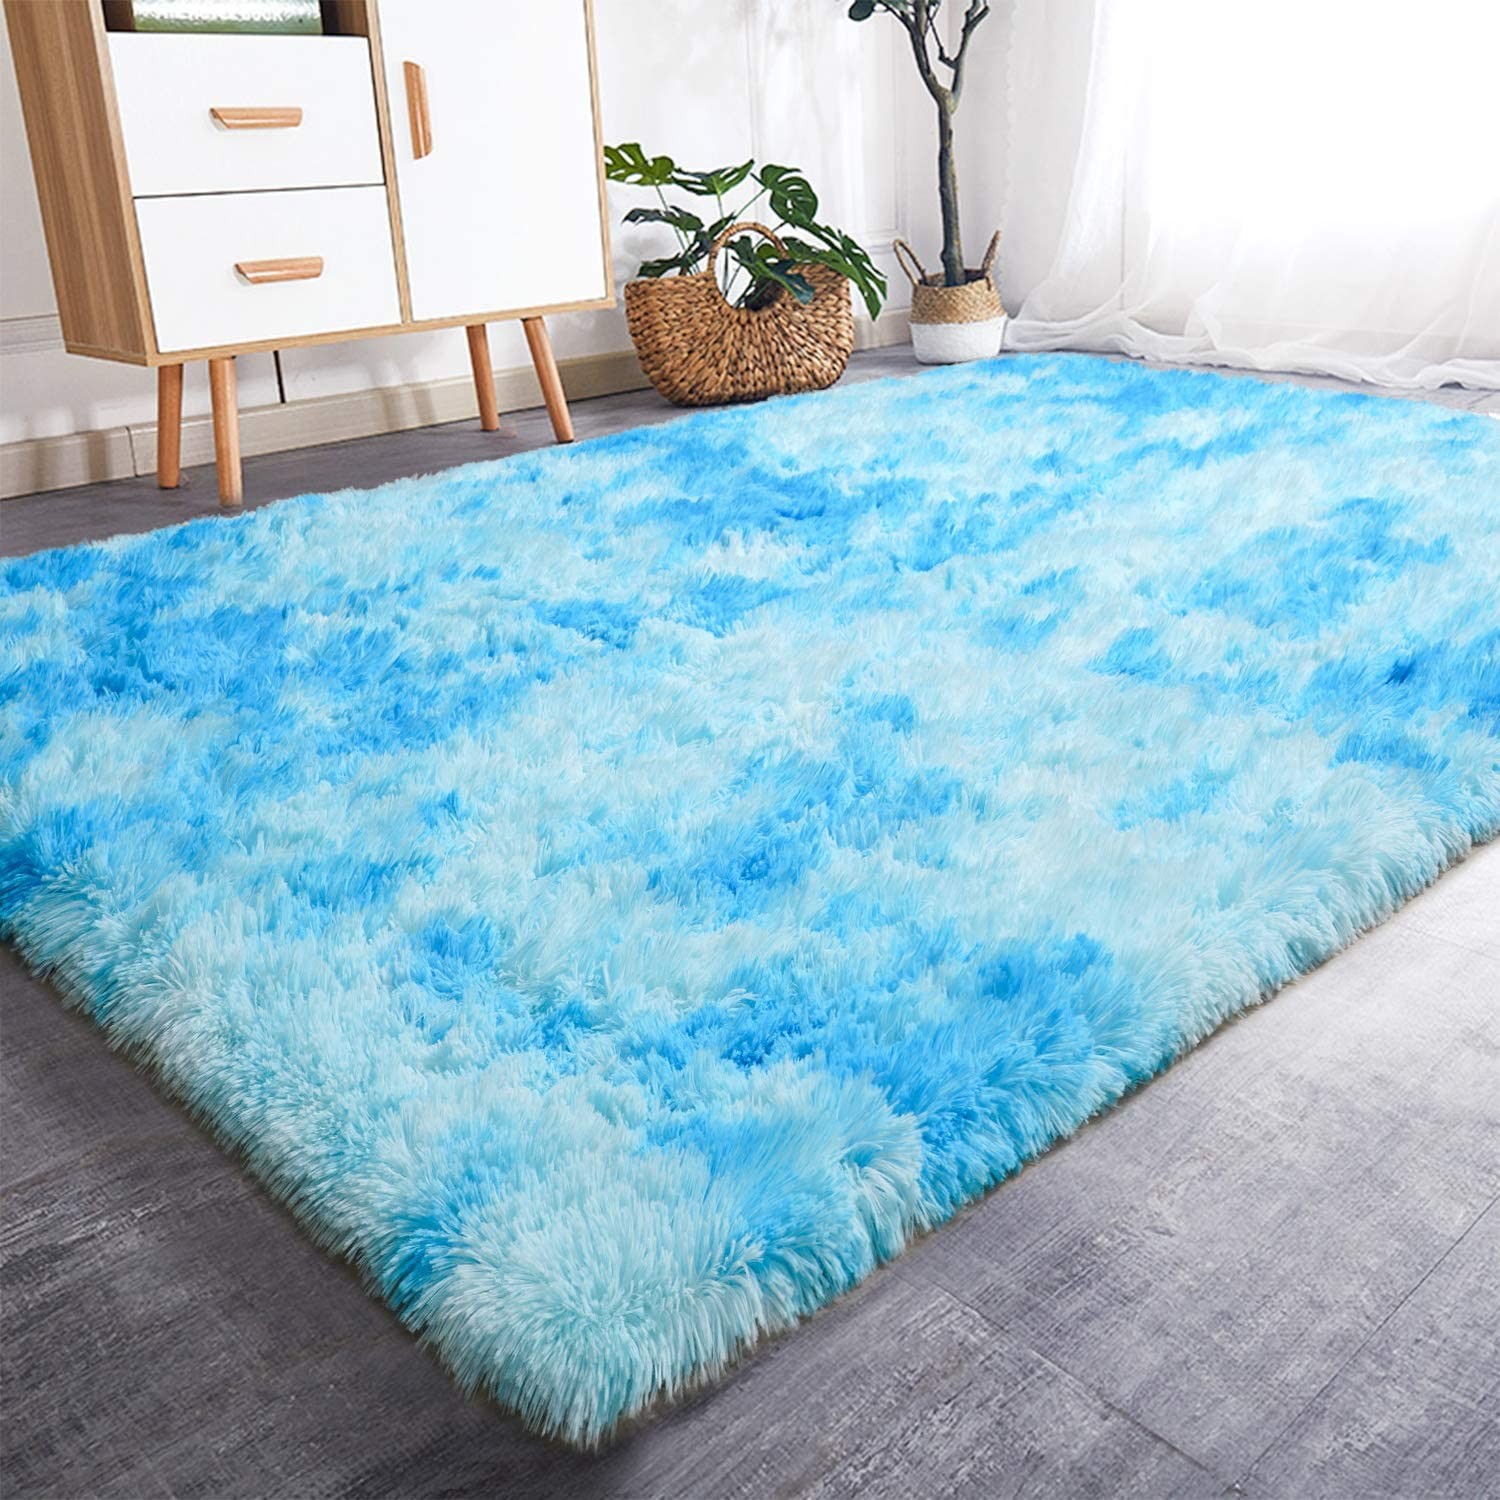 Rostyle Luxury Fluffy Area Rugs Shag Indoor Nursery Rug for Boys Girls Extra Soft Fuzzy Kids Bedroom Carpets Plush Living Room Home Decorate Area Rugs, 5 ft x 8 ft, Sky Blue